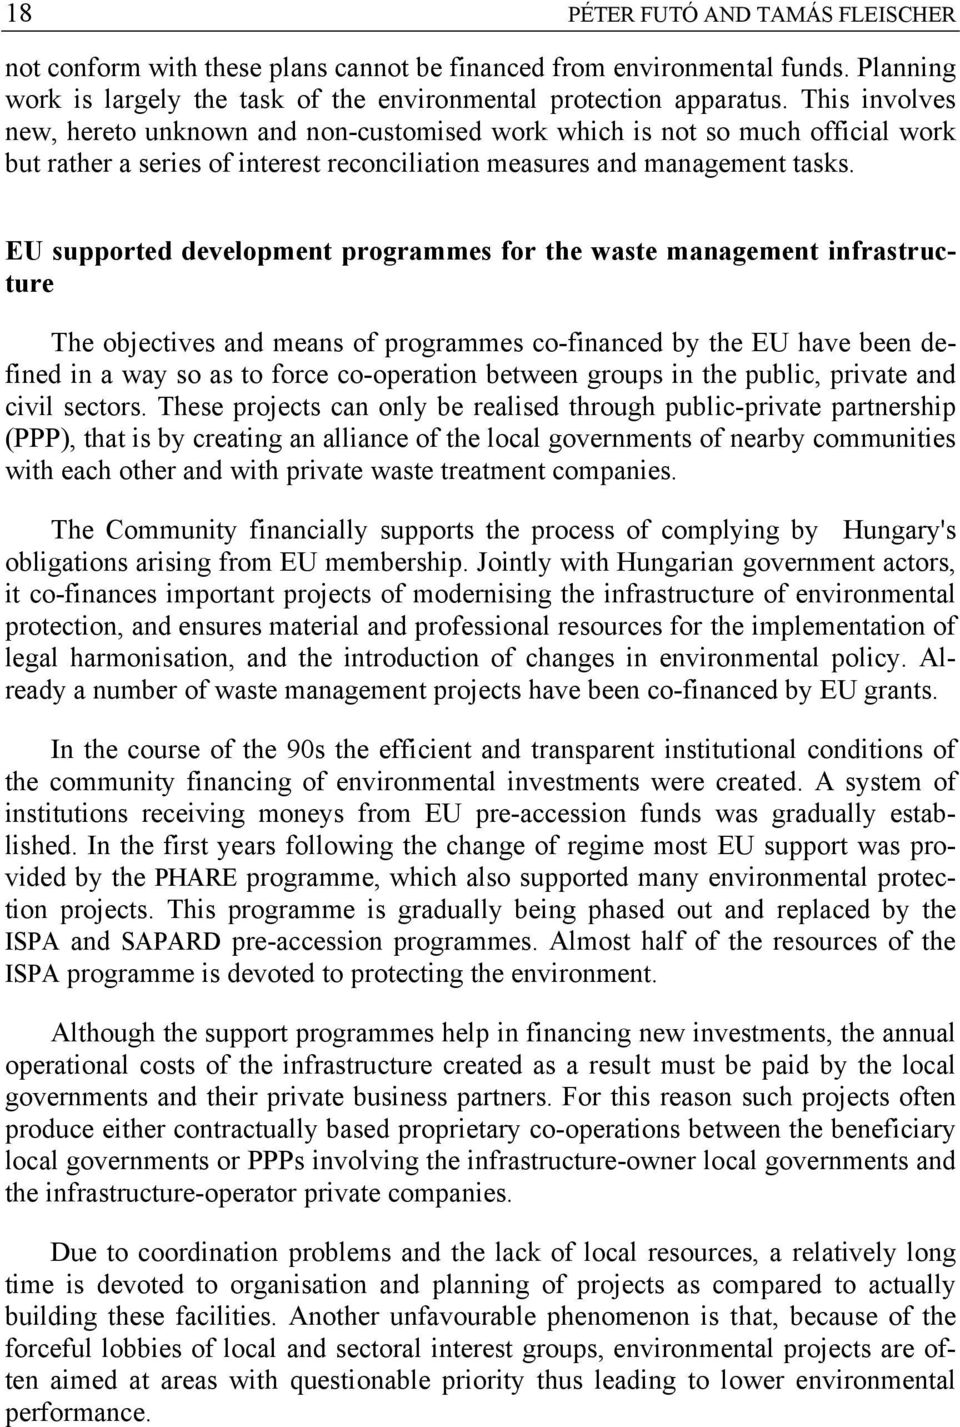 EU supported development programmes for the waste management infrastructure The objectives and means of programmes co-financed by the EU have been defined in a way so as to force co-operation between